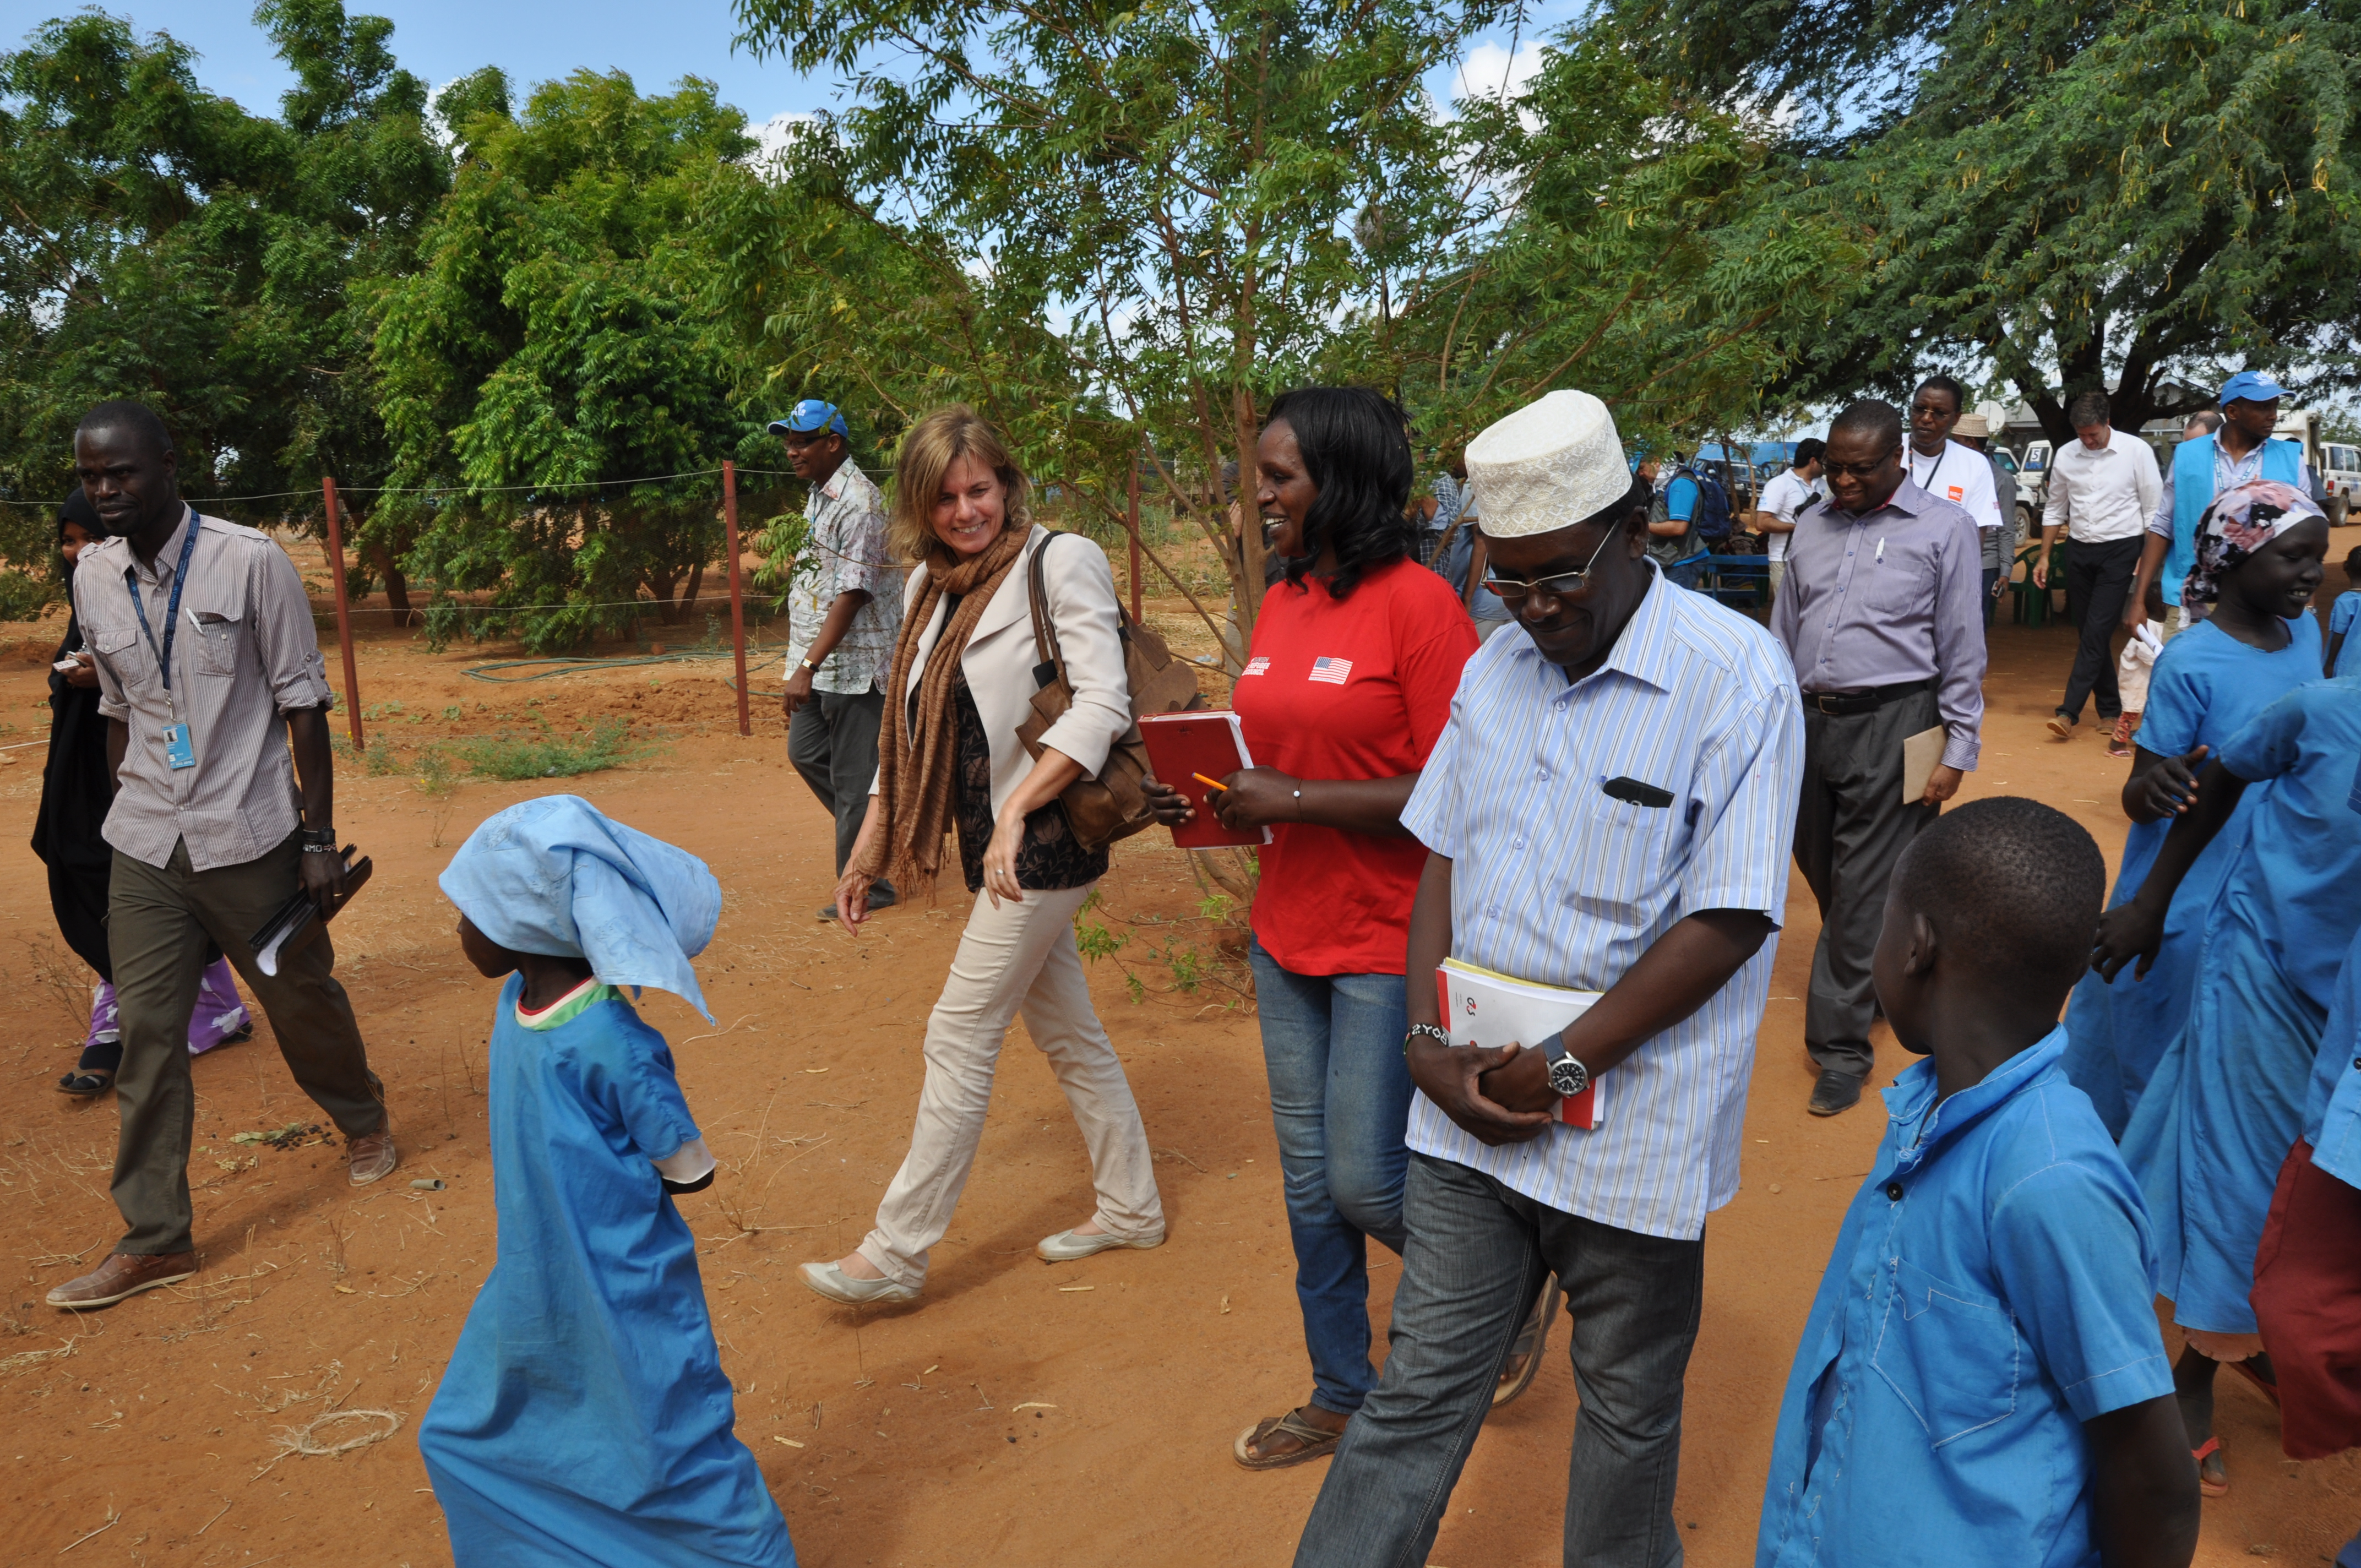 Isabella Lövin visiting a refugee camp in Dadaab, Kenya.